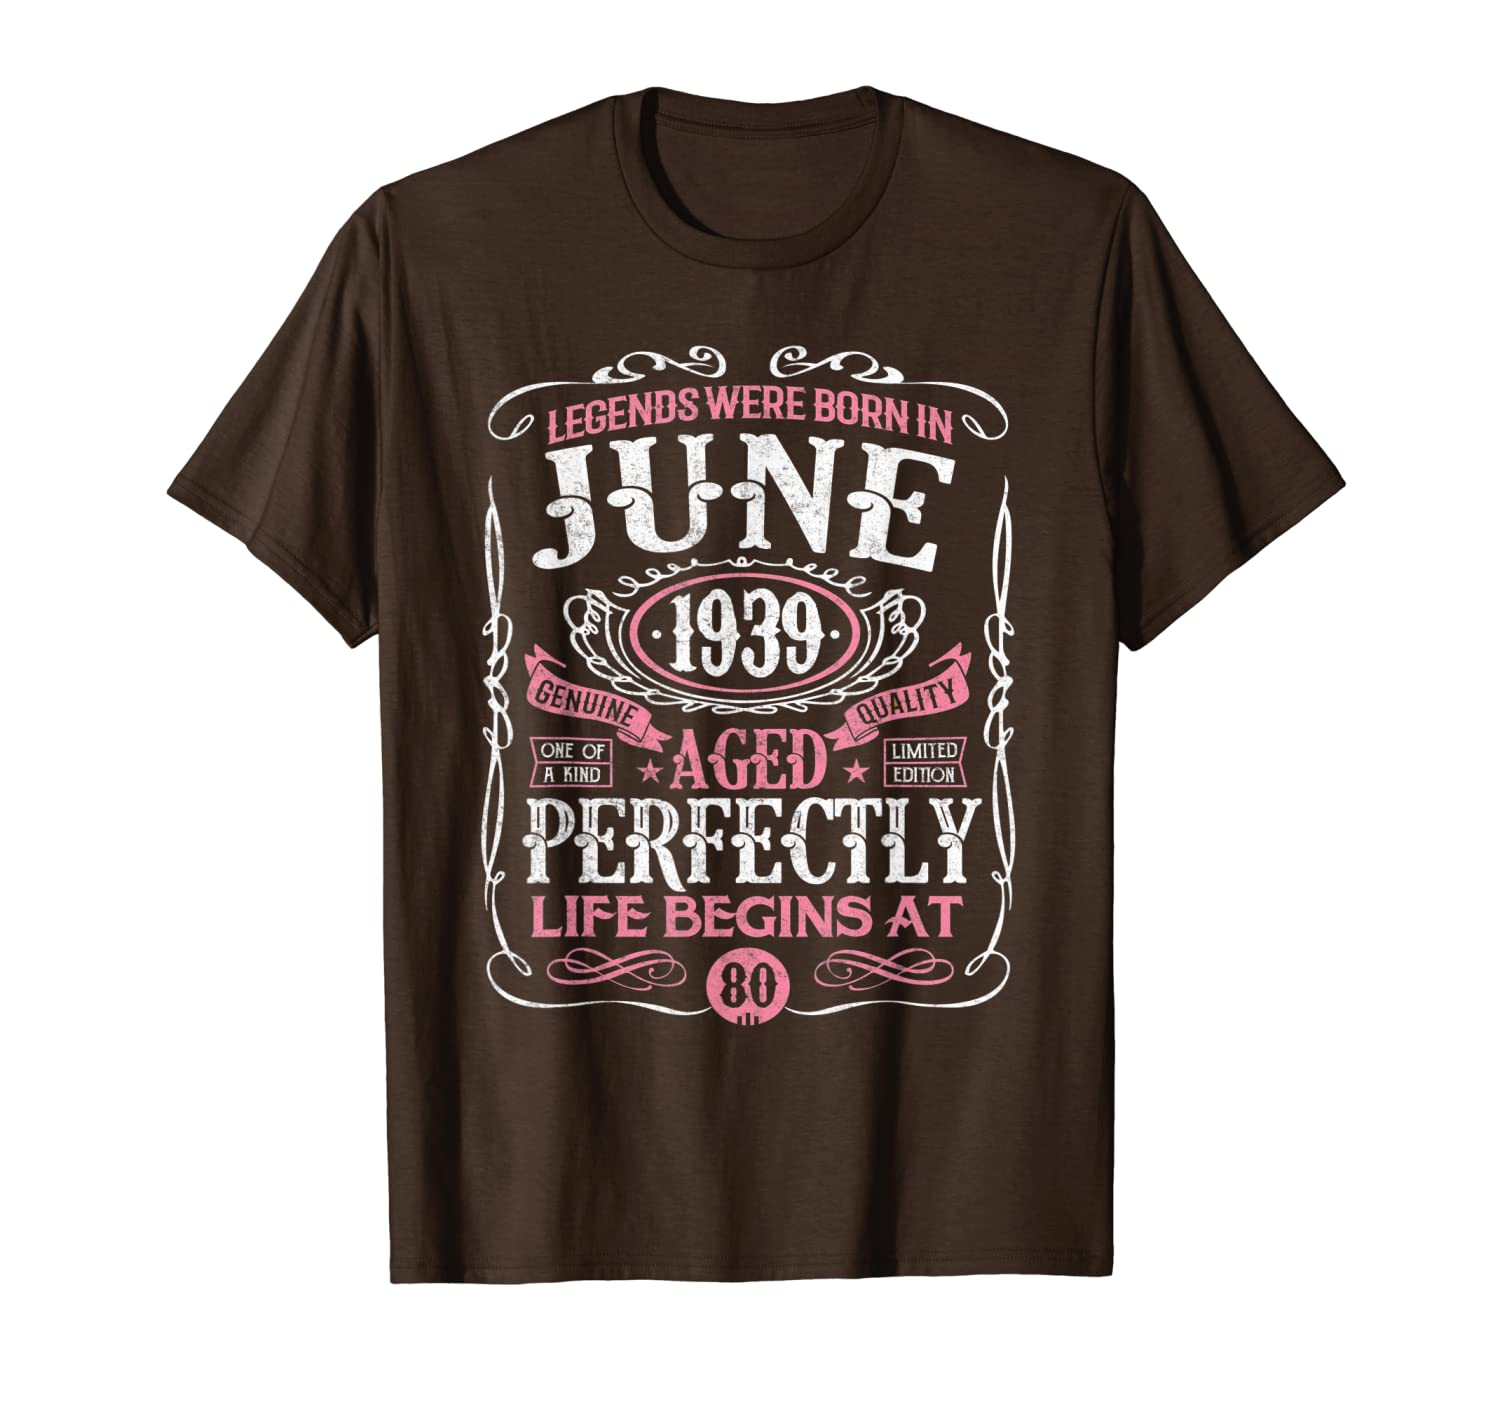 Legends Were Born In June 1939 80th Birthday Gift Shirt T-Shirt Unisex Tshirt